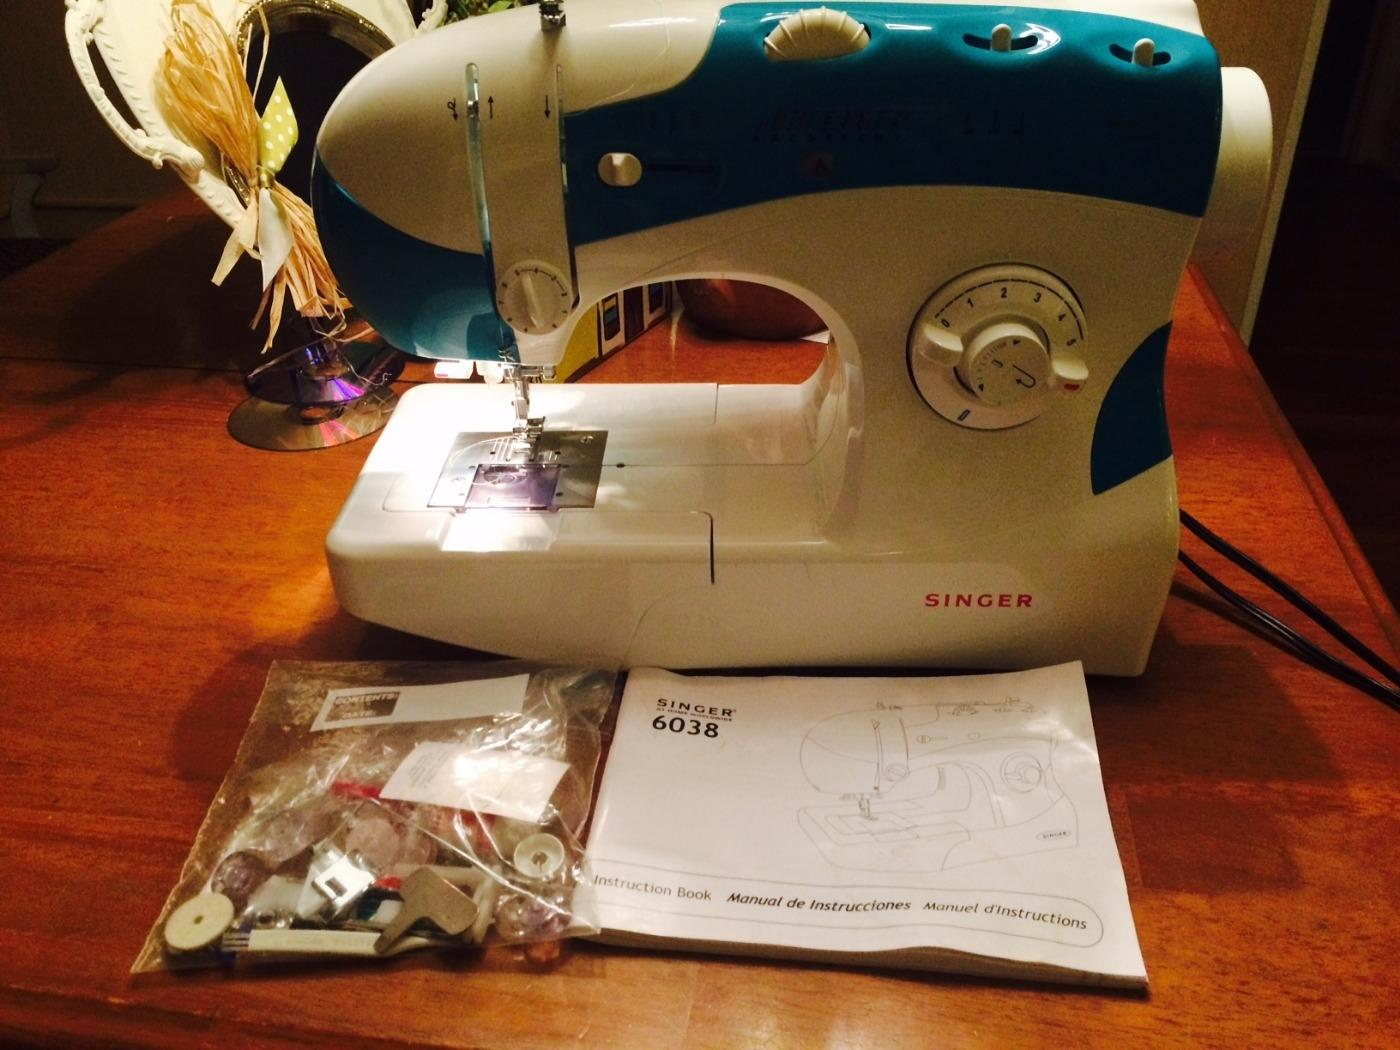 Best Singer 6038 Sewing Machine for sale in Mountain Brook, Alabama for 2019